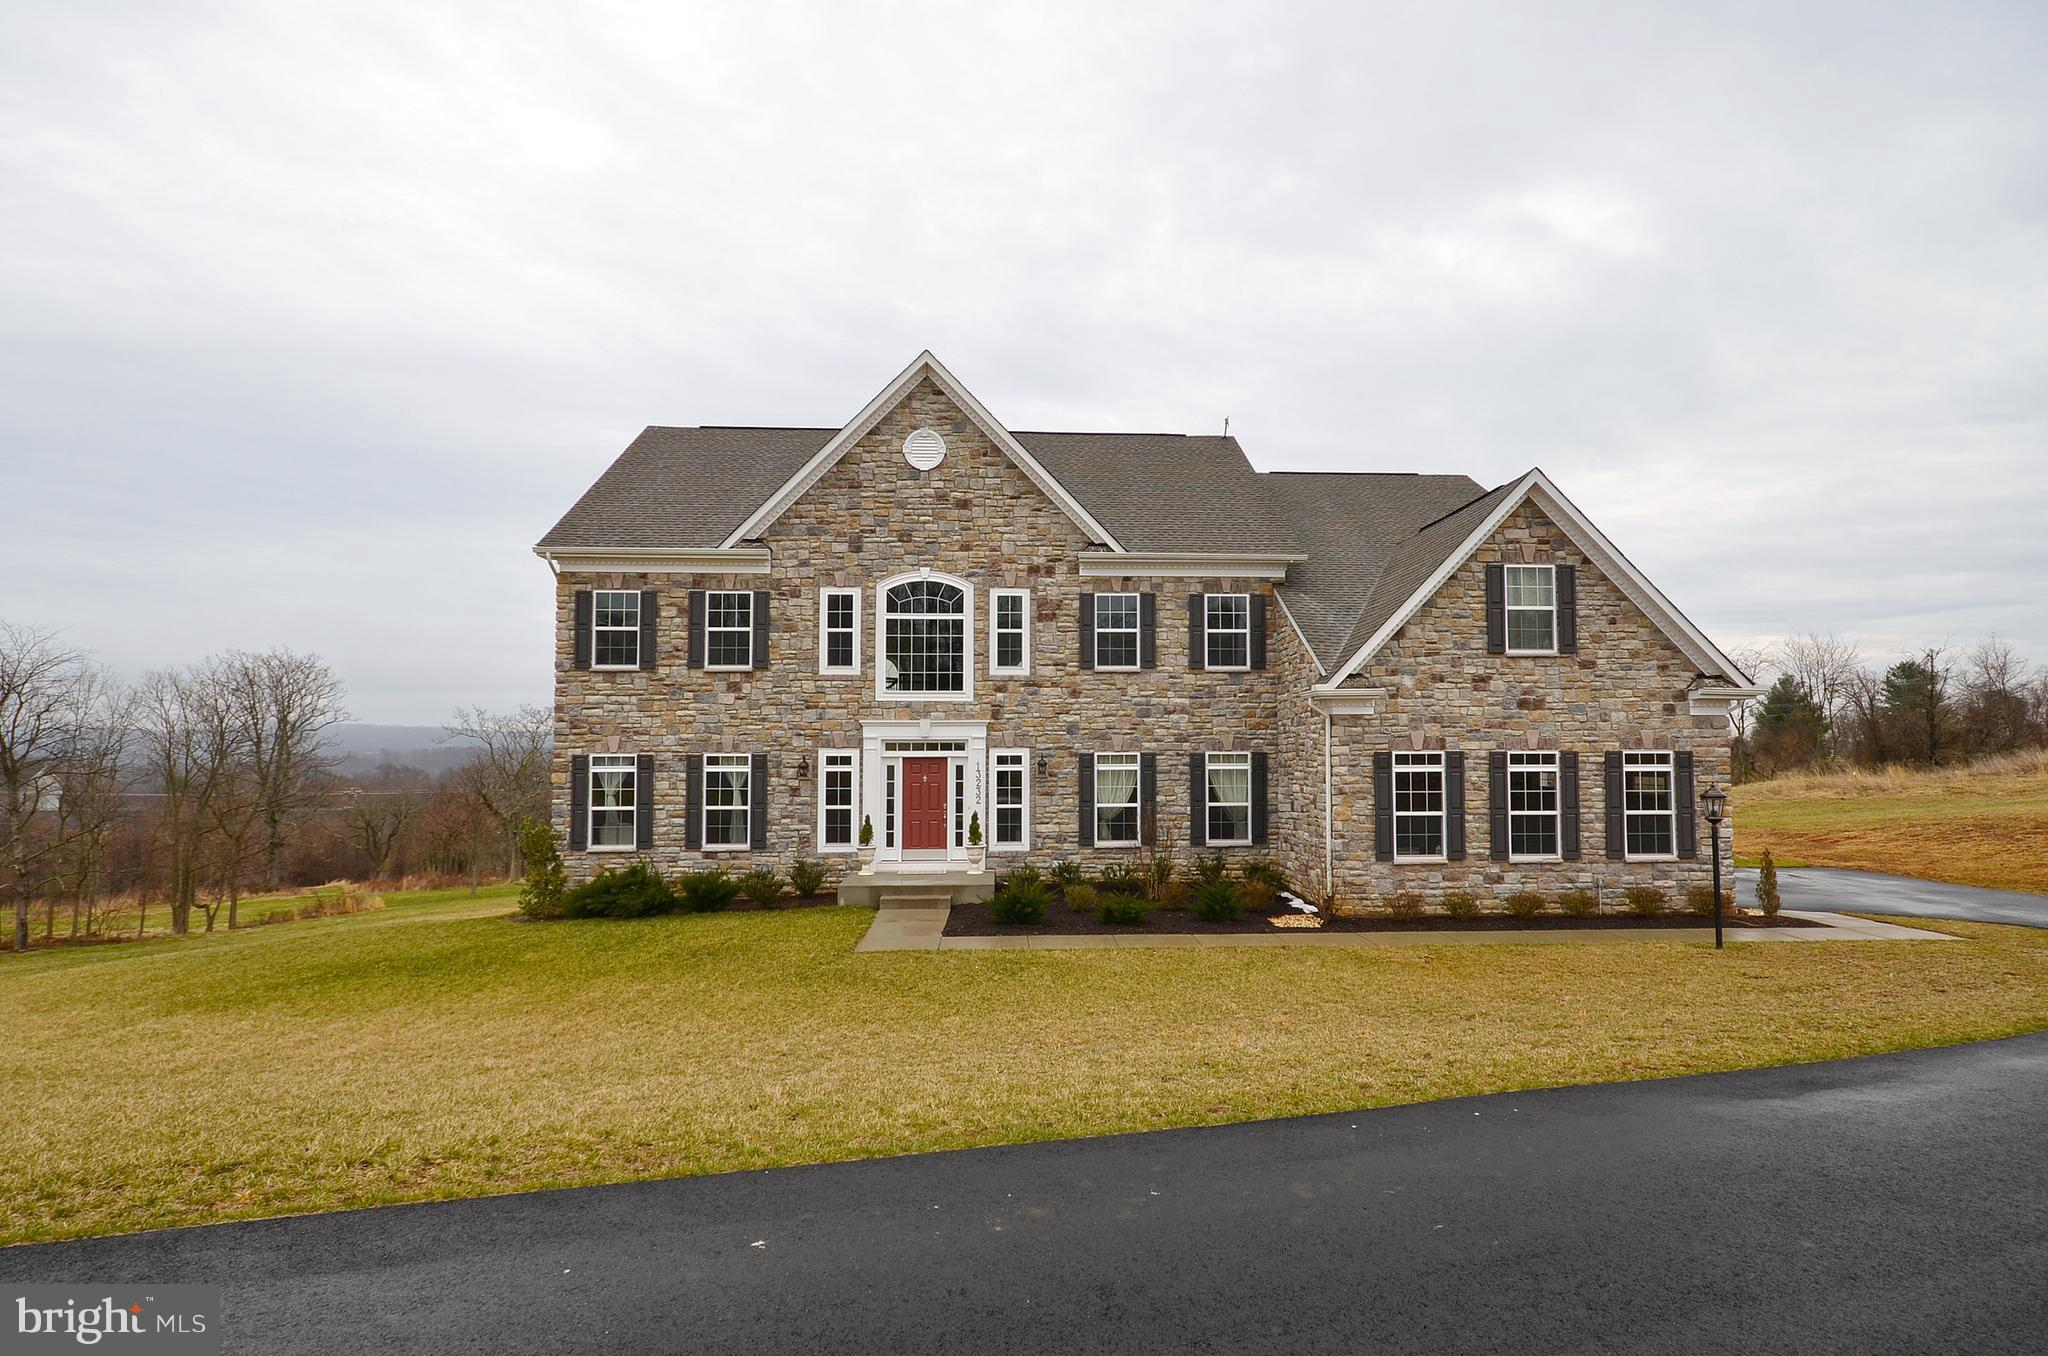 13232 WATERFORD VIEW COURT, LOVETTSVILLE, VA 20180